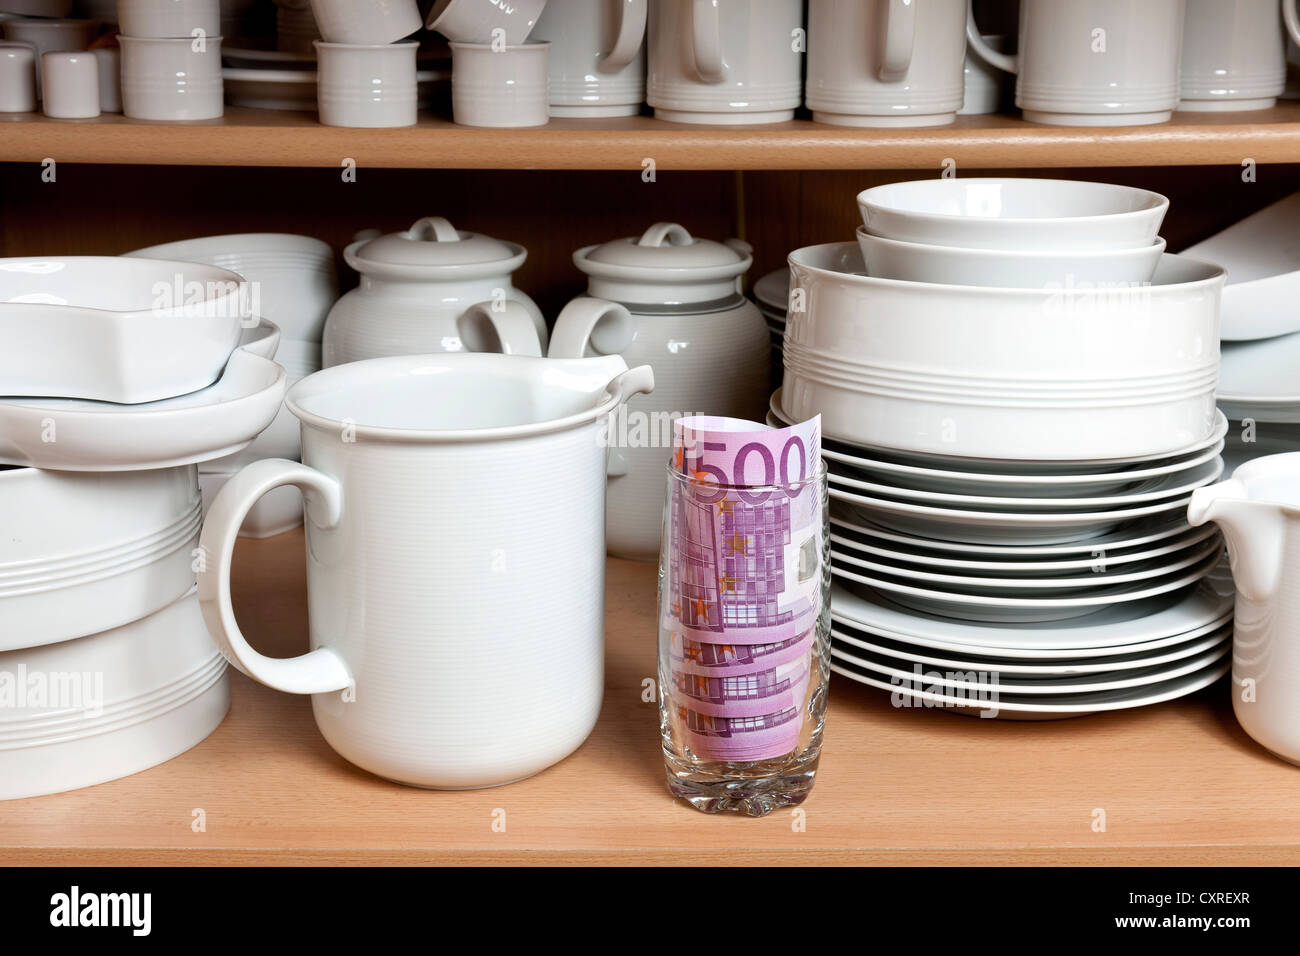 Money in the kitchen cupboard, between cups and plates - Stock Image